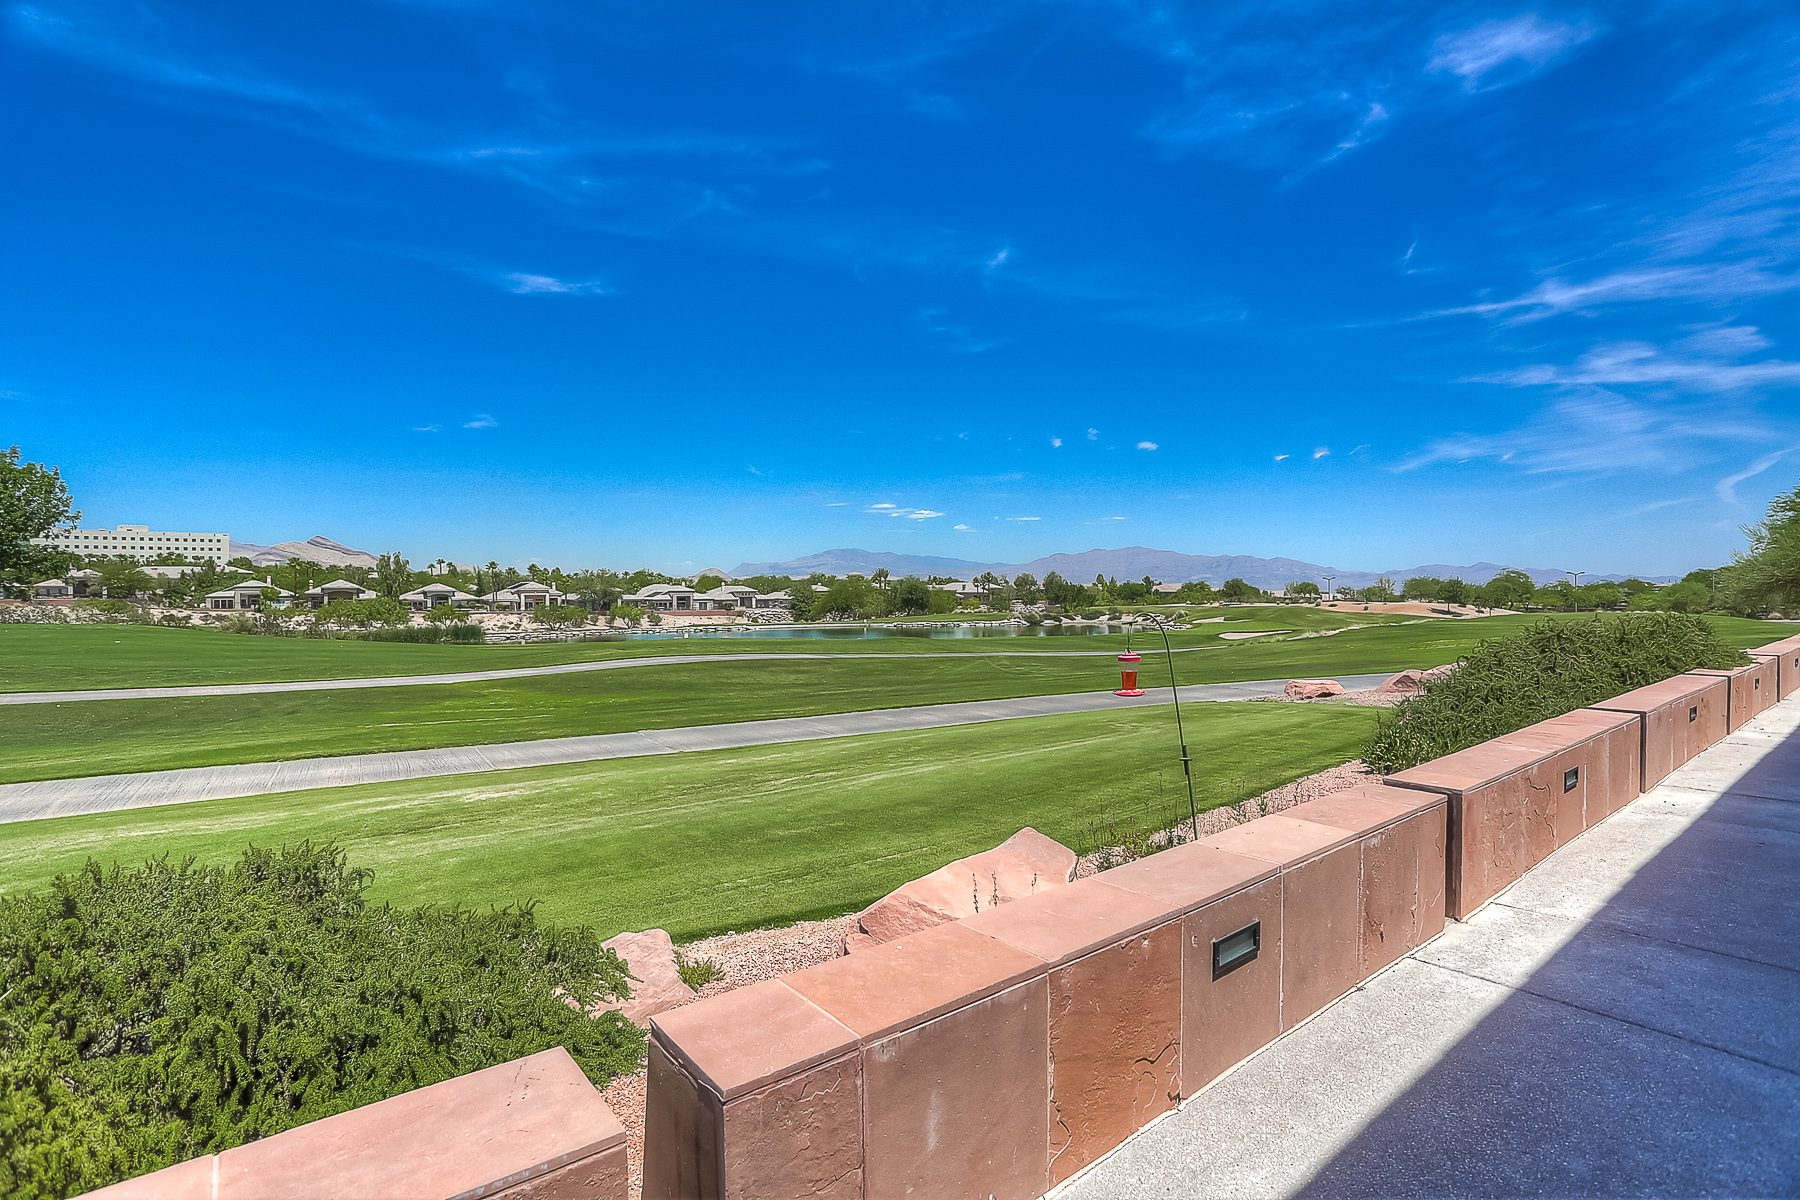 06 summerlin community parks